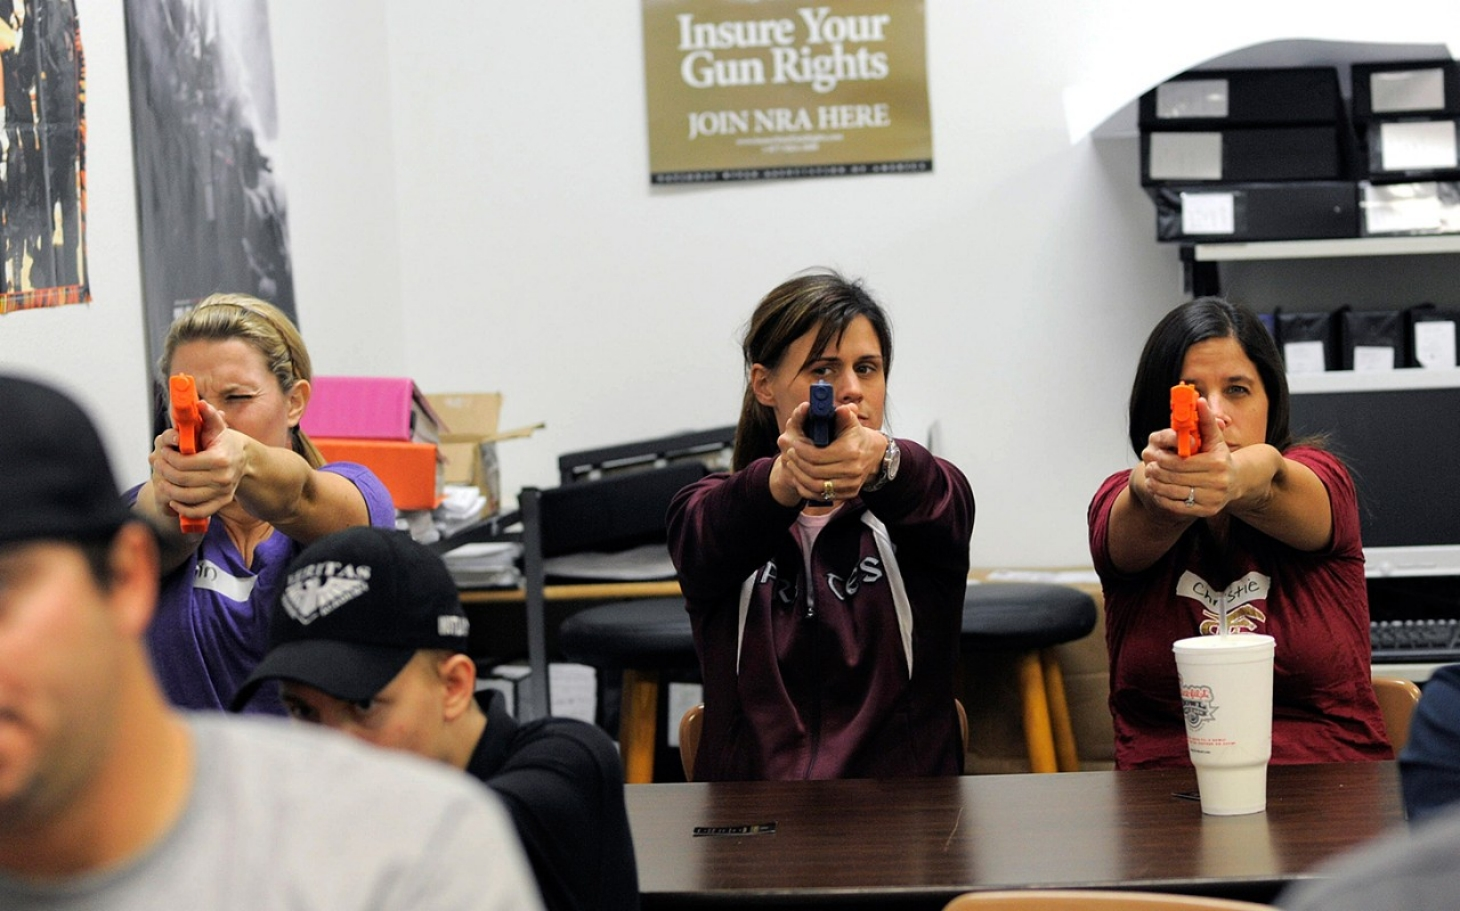 arming teachers in schools A school district in idaho recently purchased firearms and trained members of the staff to use them several other schools - mostly rural and in the west - have responded to the debate about school shootings by arming teachers.